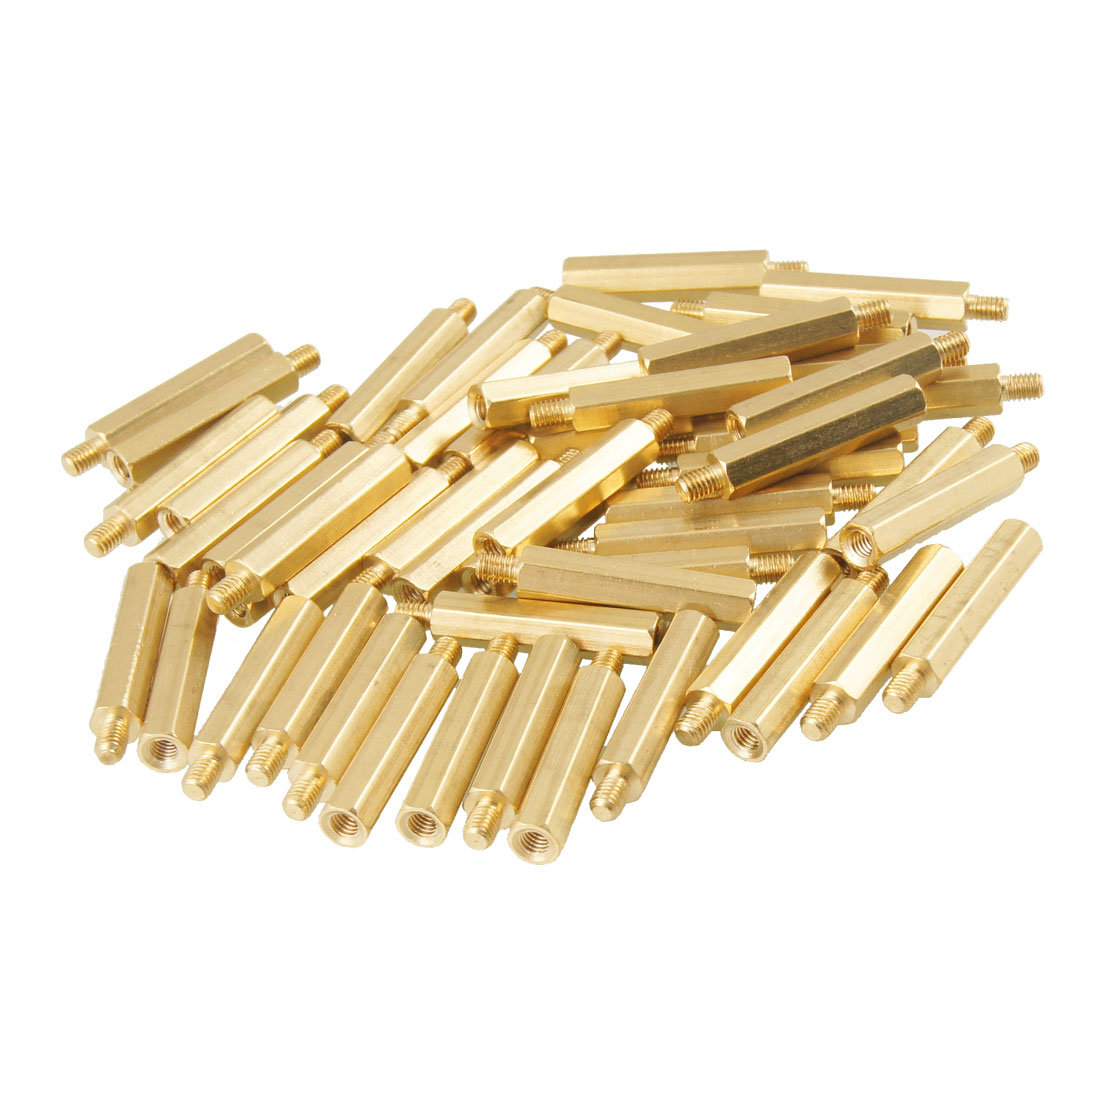 50 Pcs Screw PCB Stand-off Spacer Hex M3 Male x M3 Female 4mm